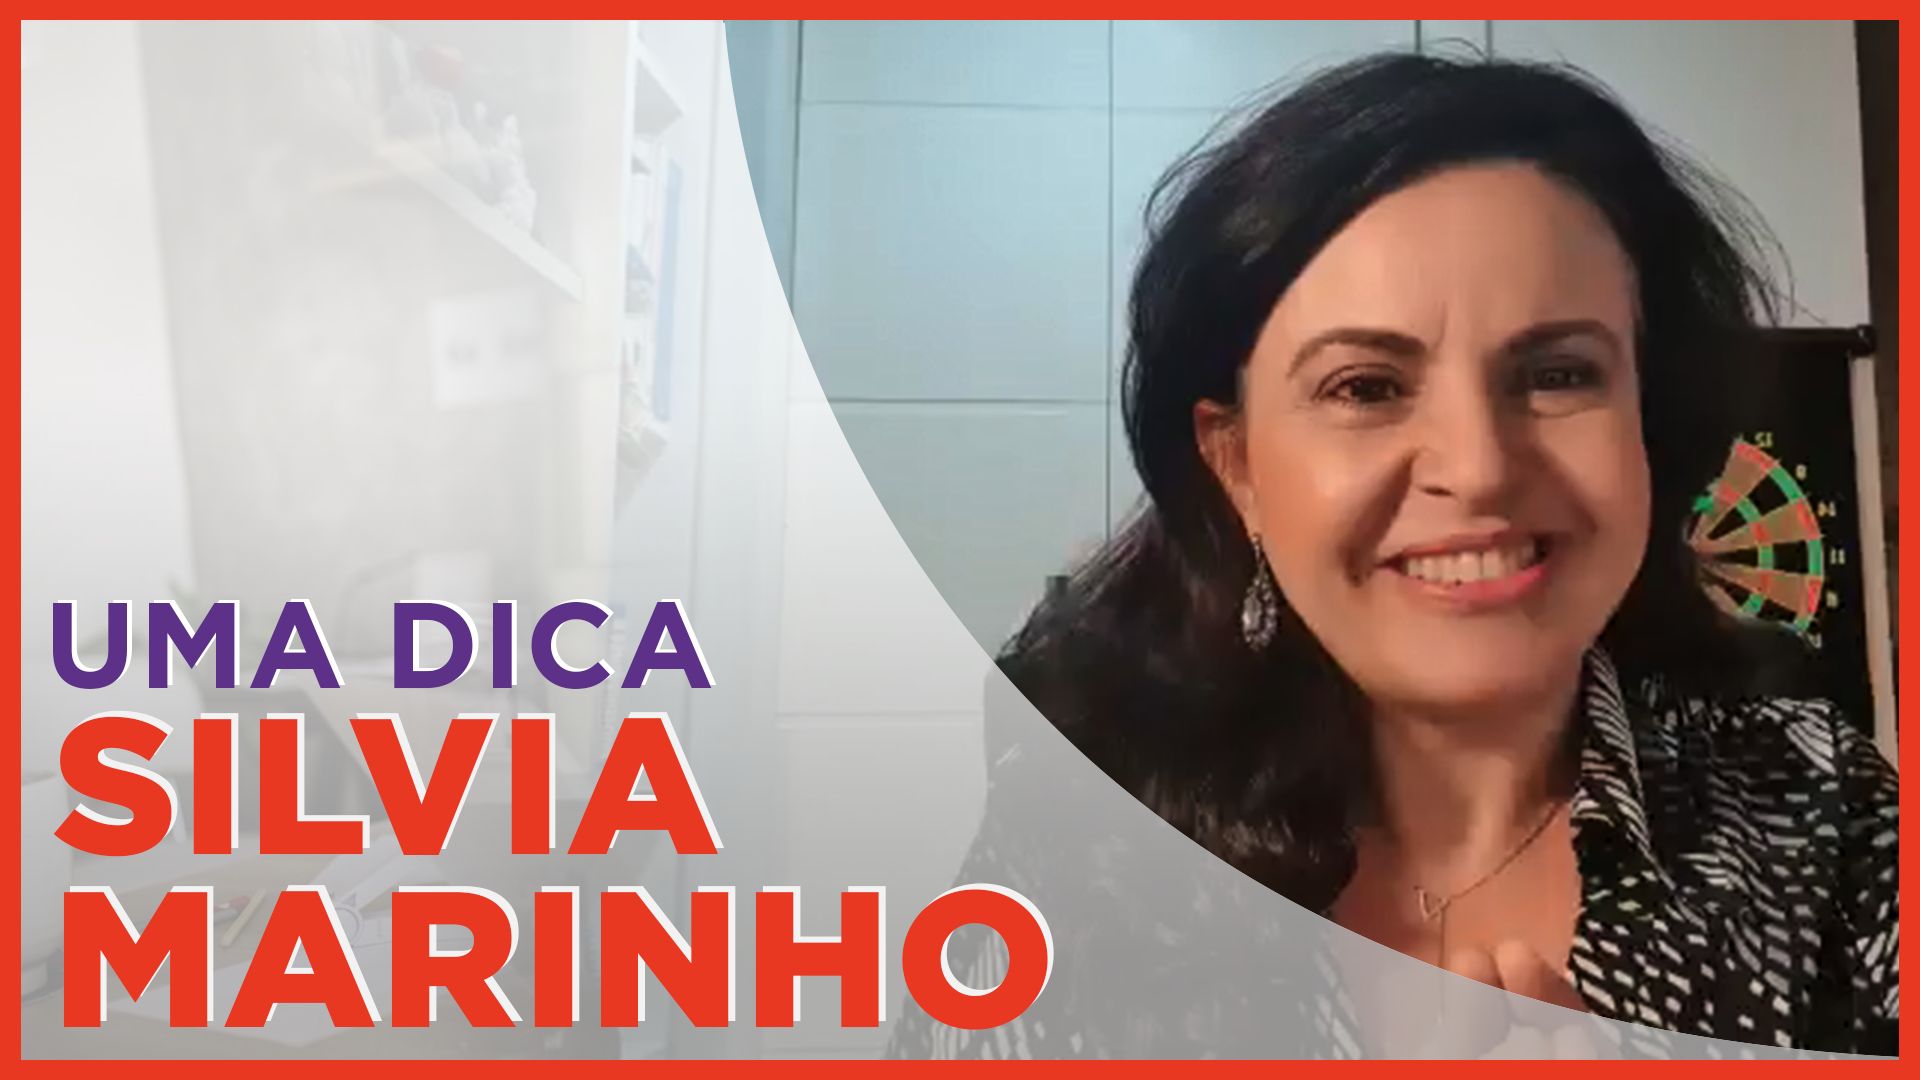 Silvia-marinho-uma-dica-de-empreendedor-marketing-digital-para-agencia-cento-e-vinte-marketing-digital-para